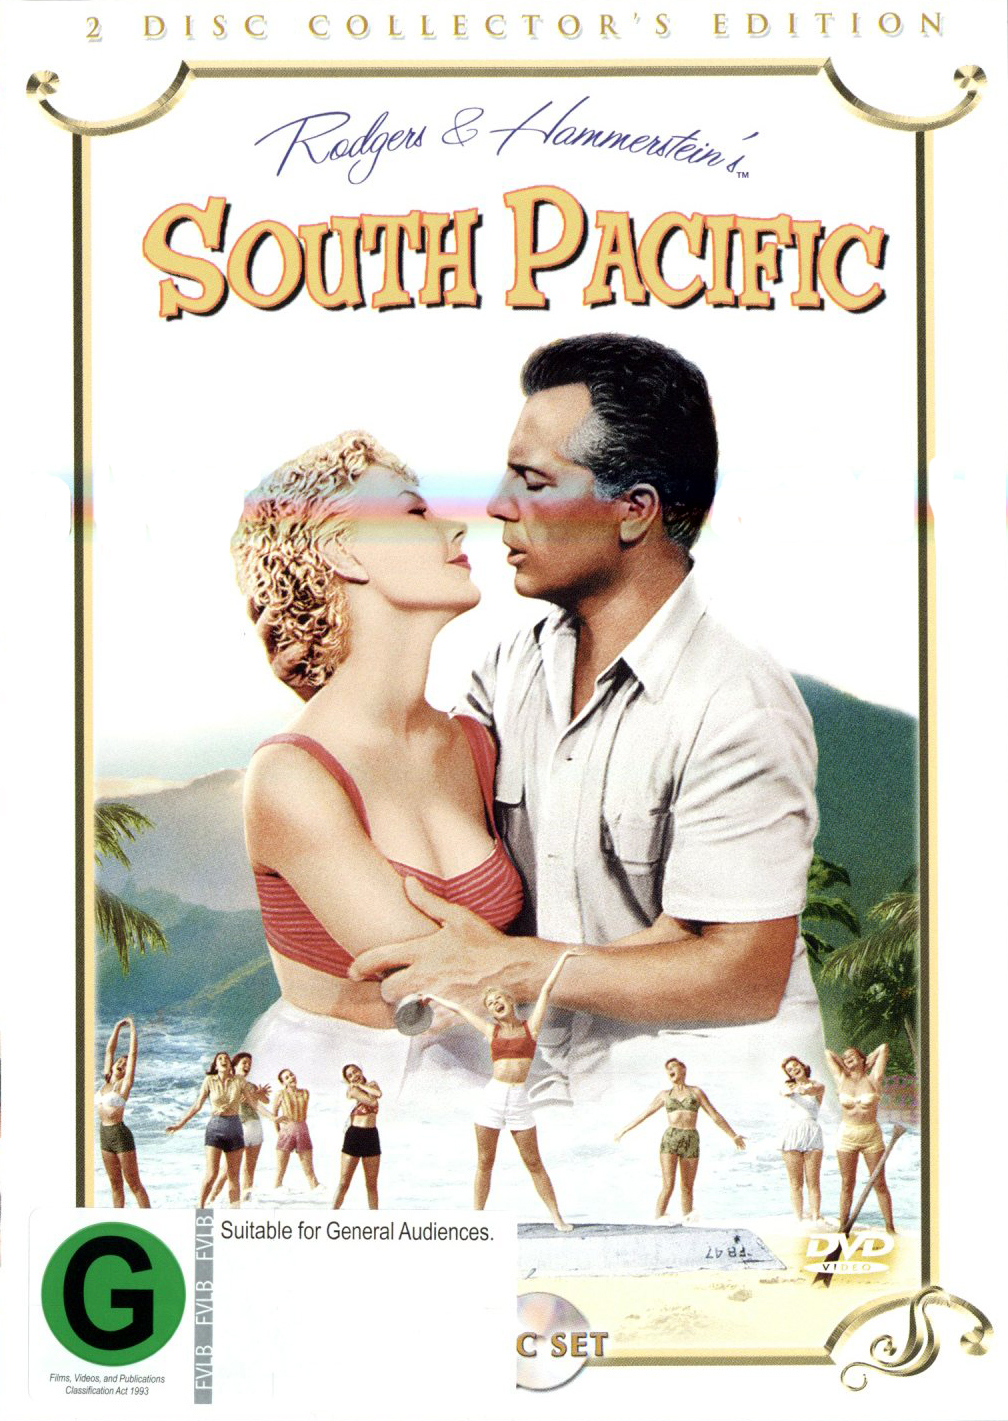 South Pacific - Collector's Edition (2 Disc Set) on DVD image